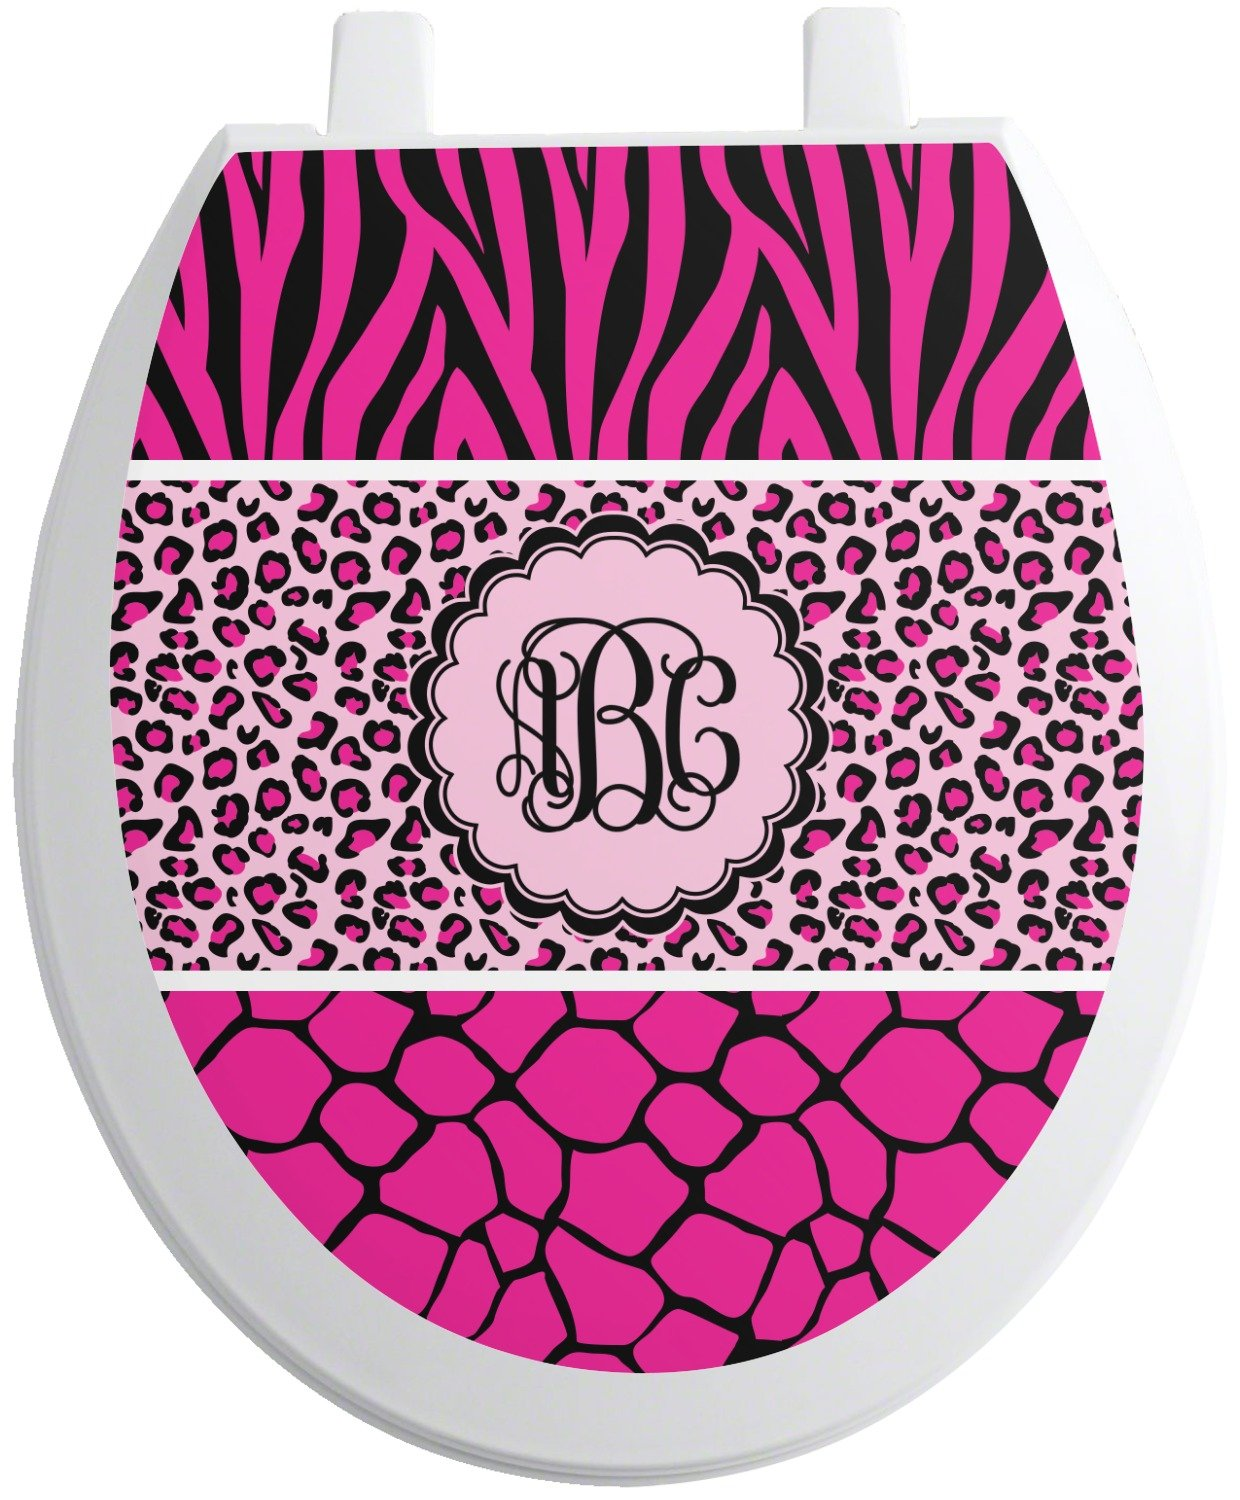 RNK Shops Triple Animal Print Toilet Seat Decal - Round (Personalized)